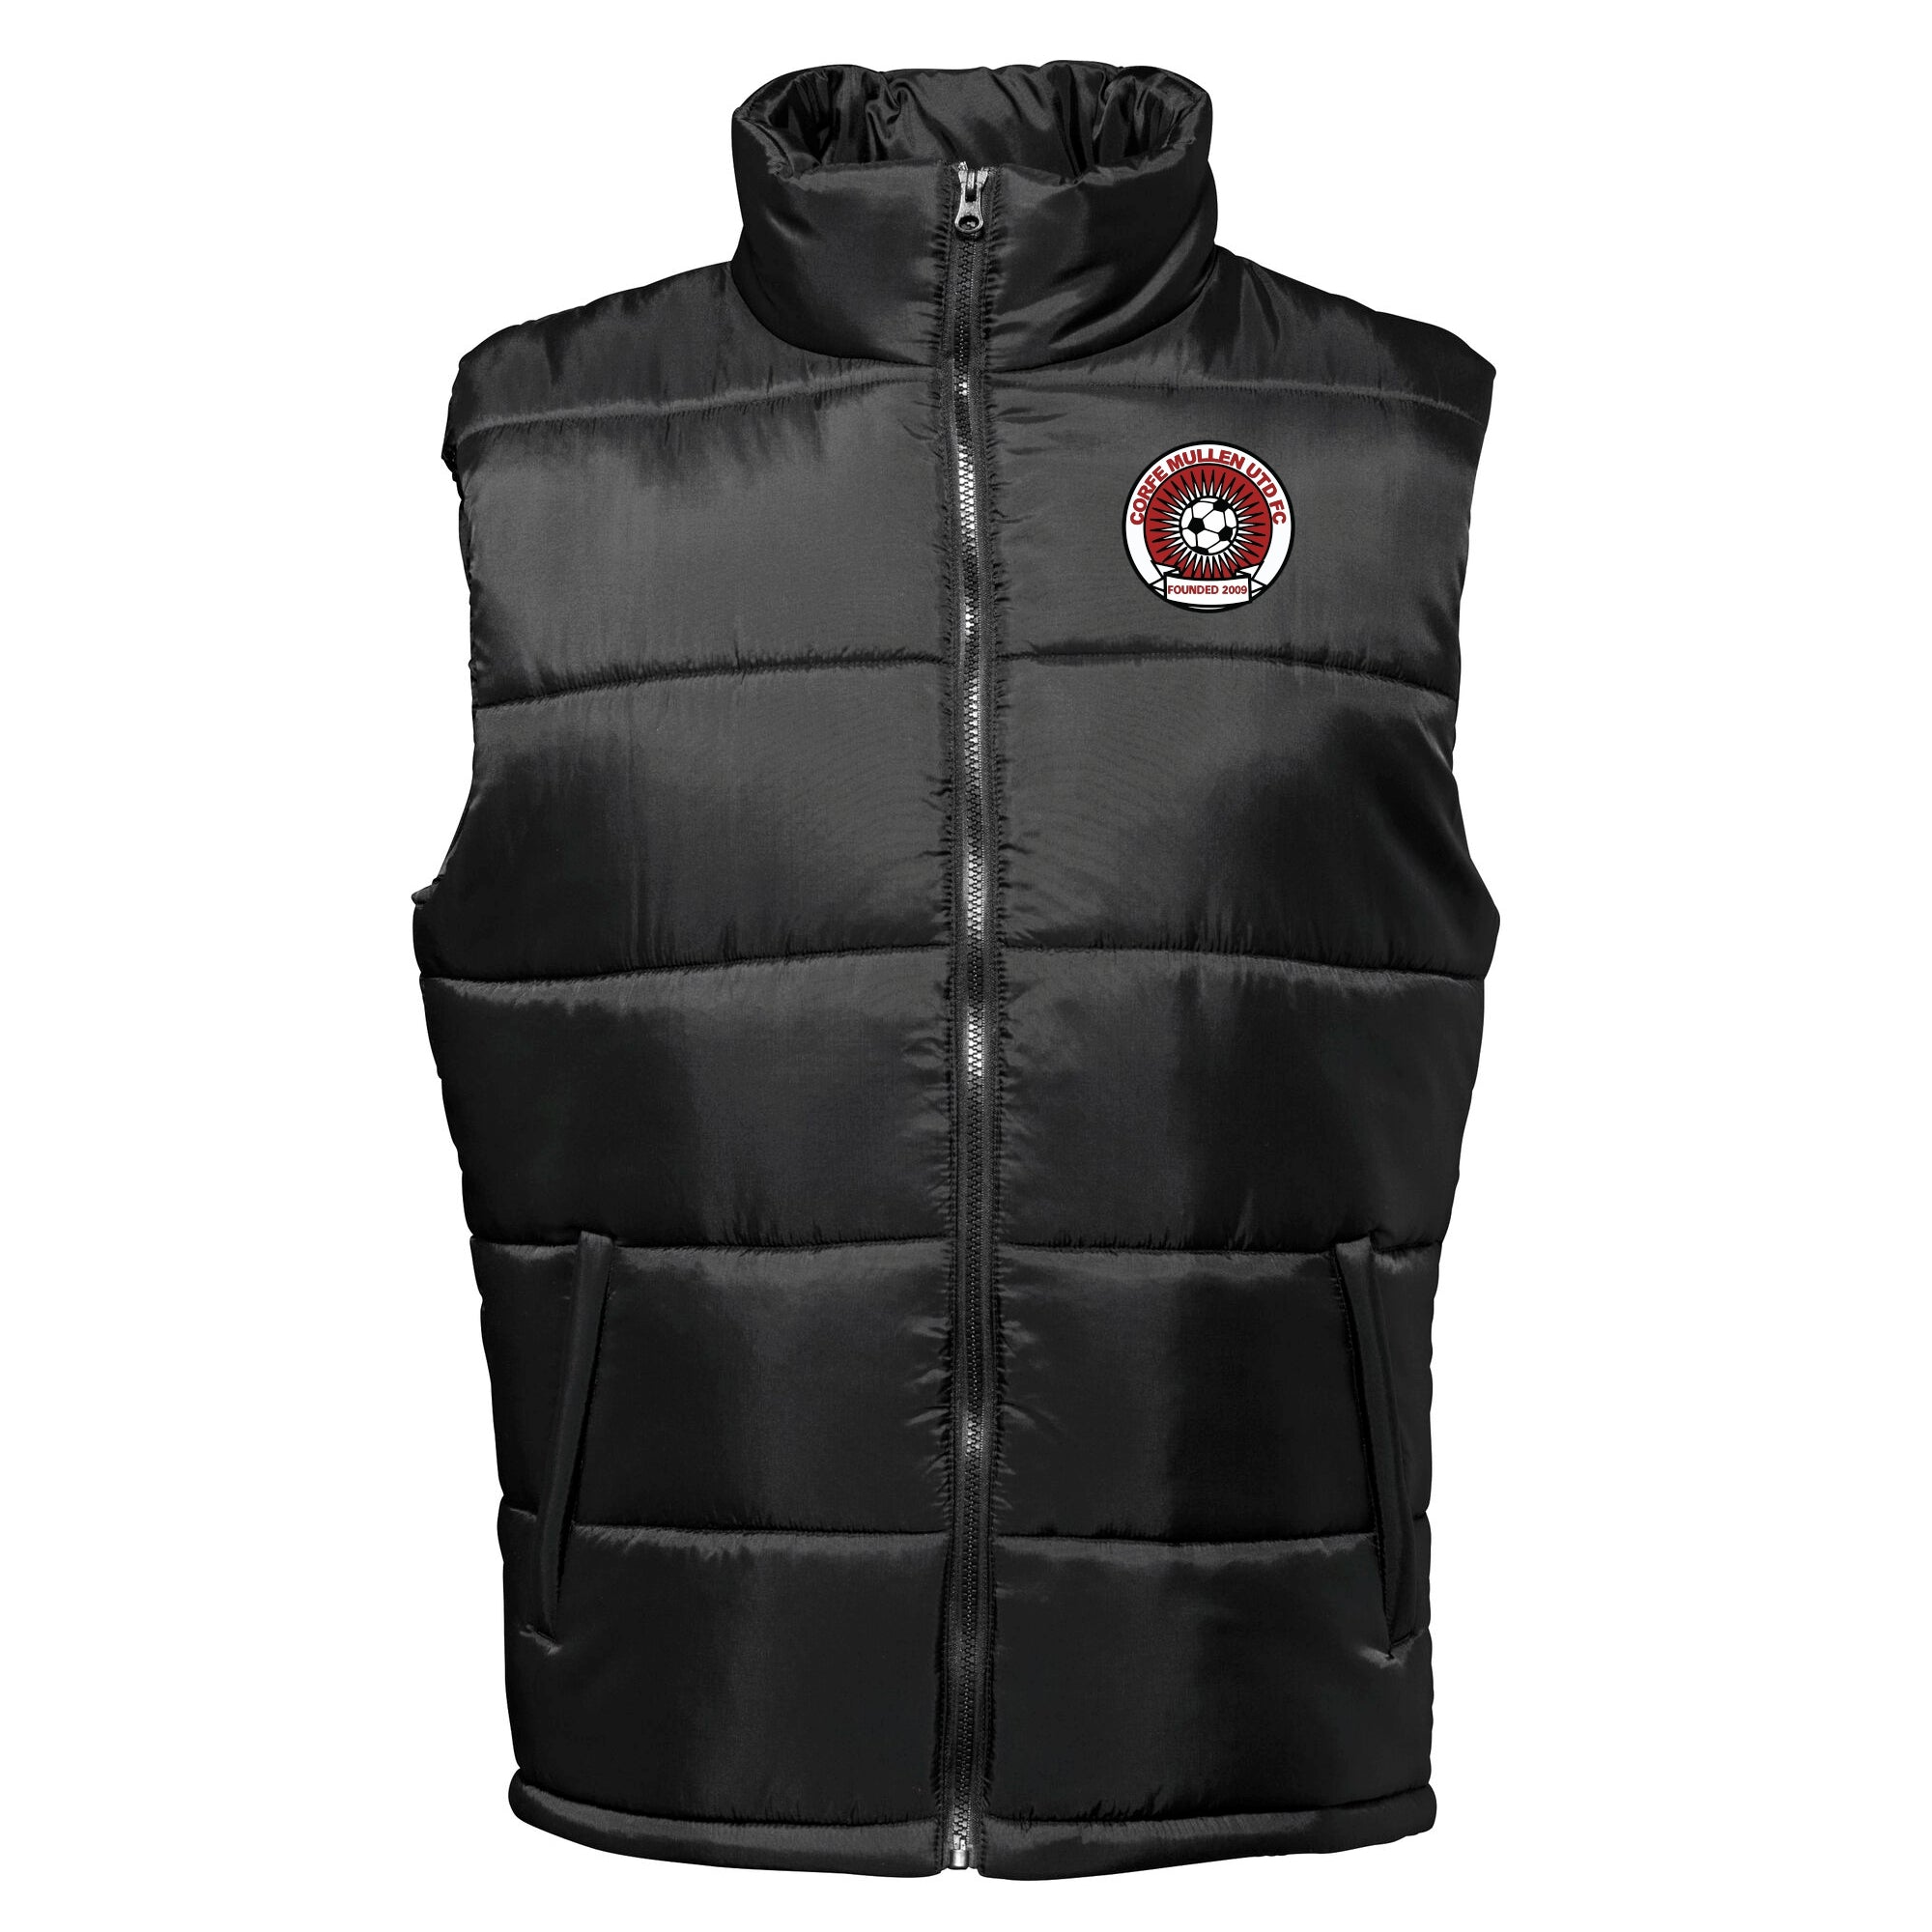 Corfe Mullen United FC Body warmer in black with club badge.